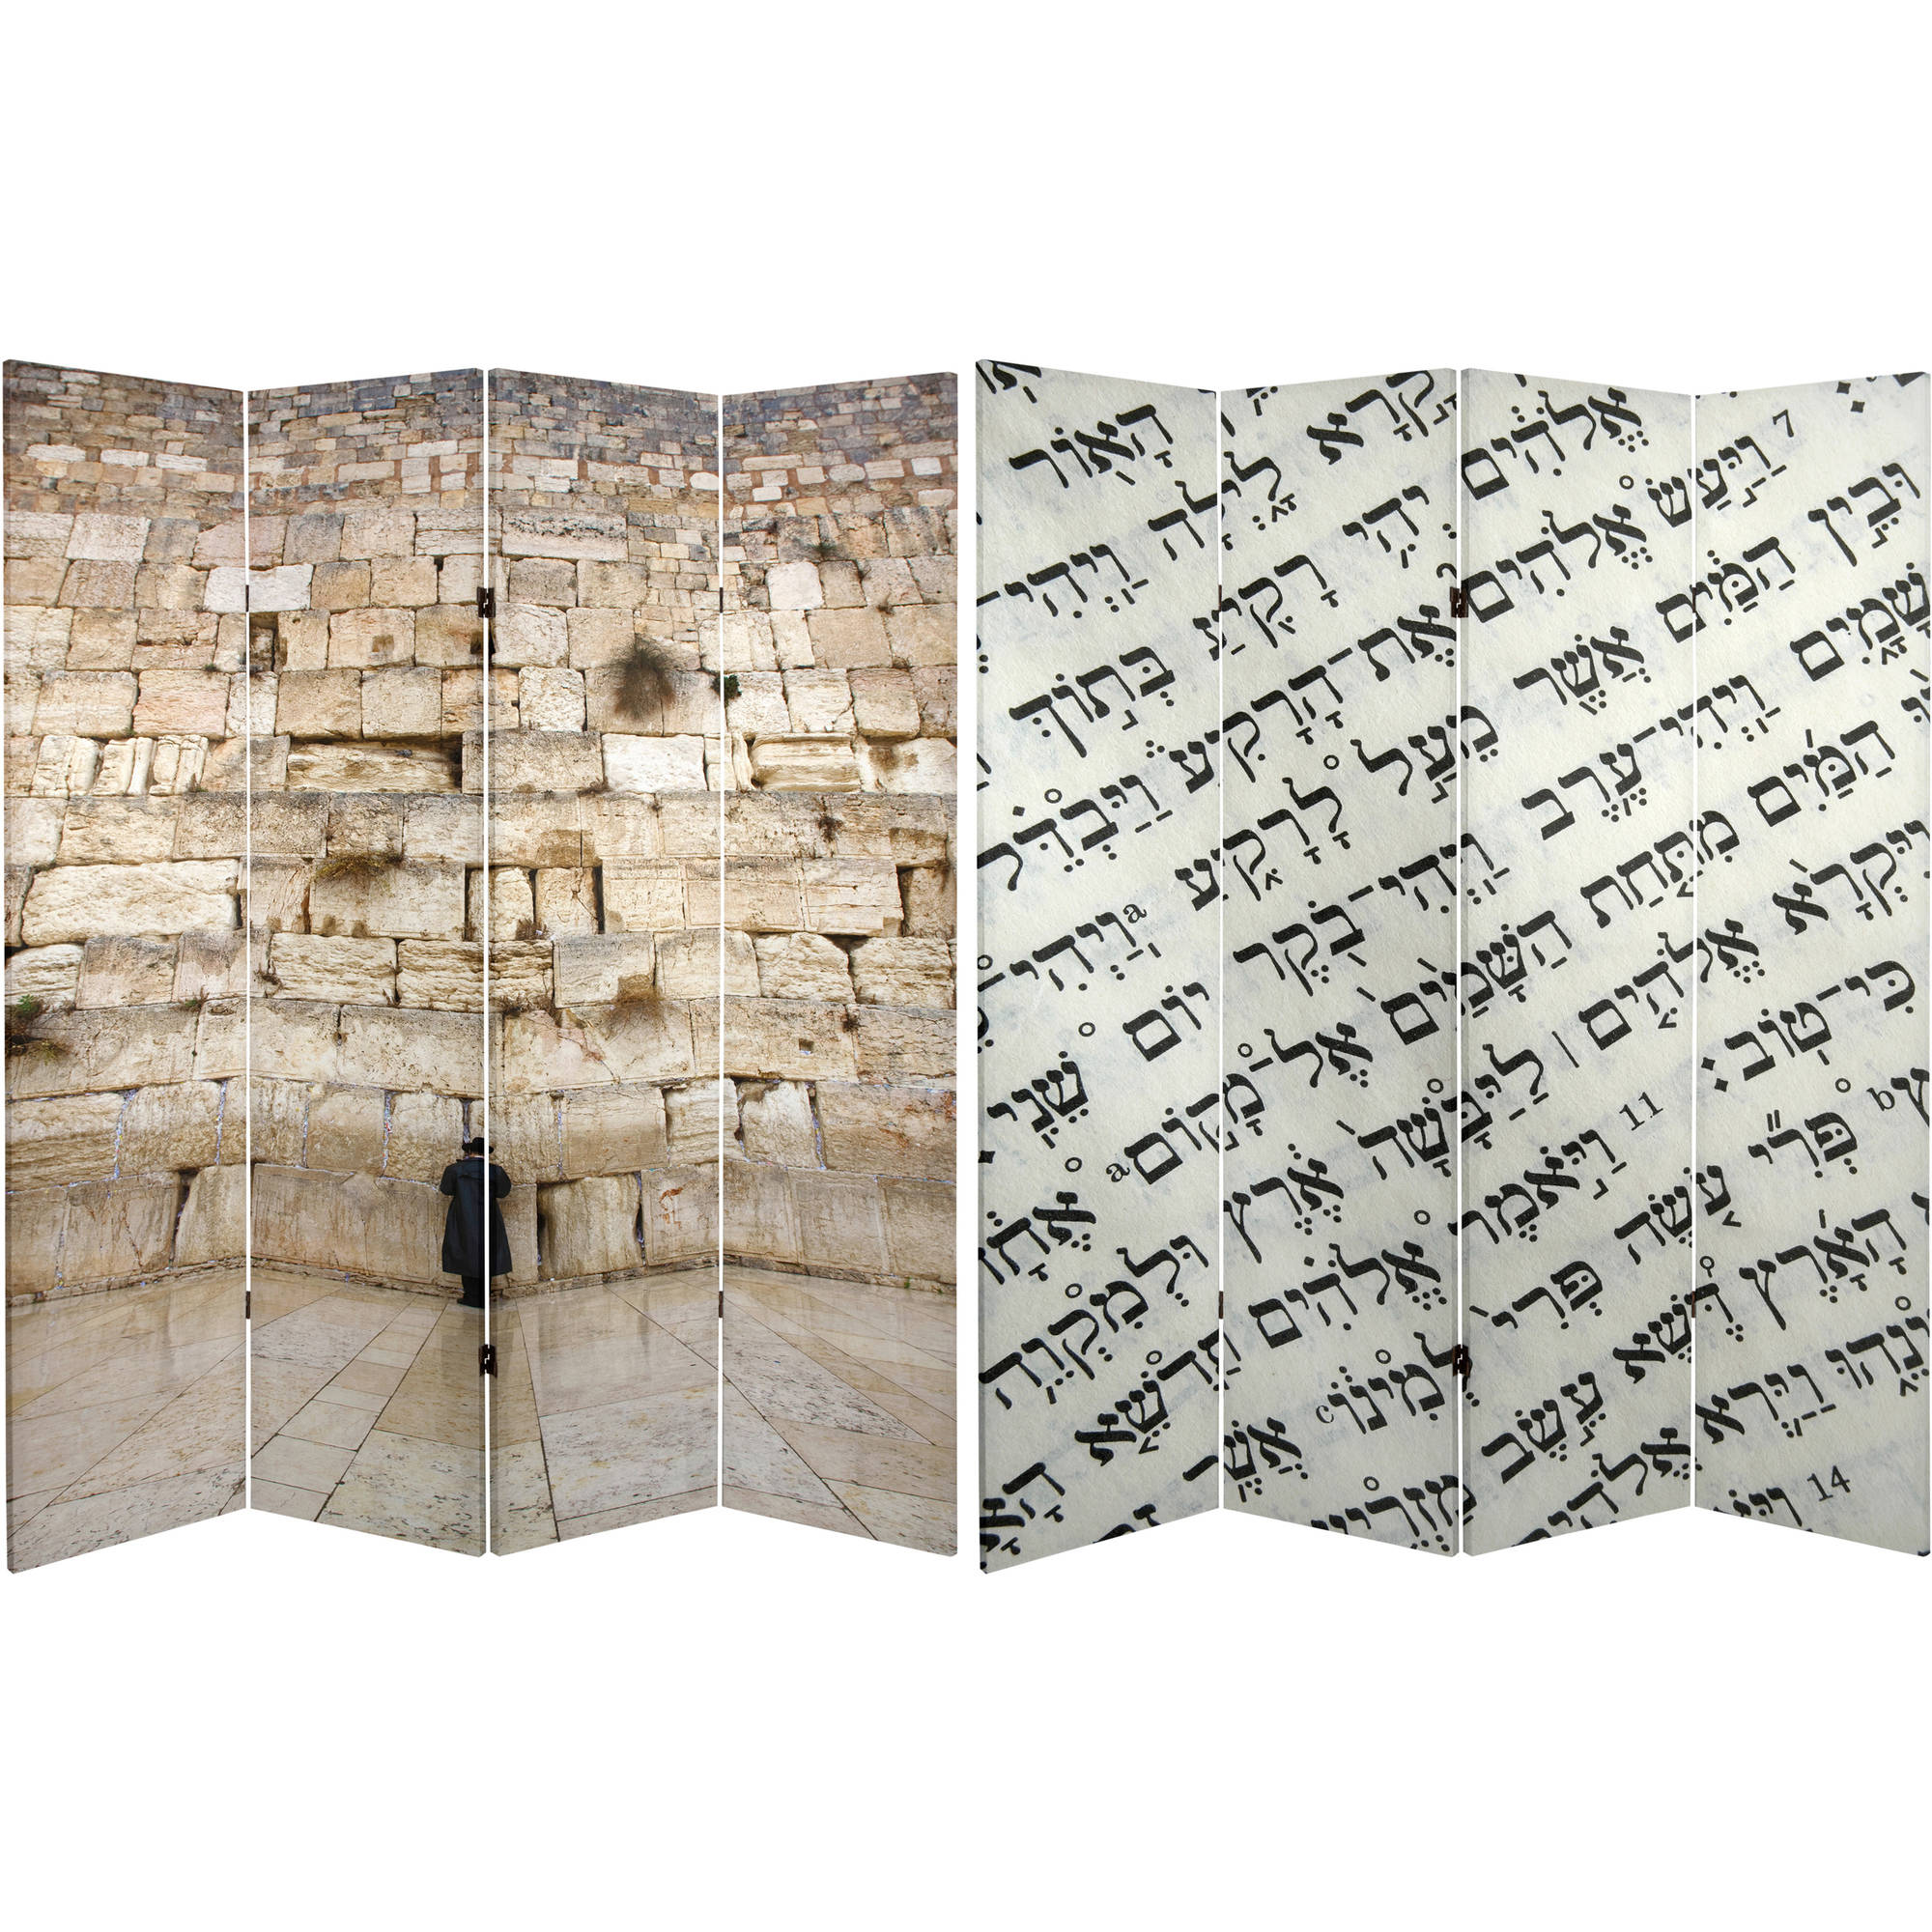 6' Tall Double Sided Wailing Wall Room Divider